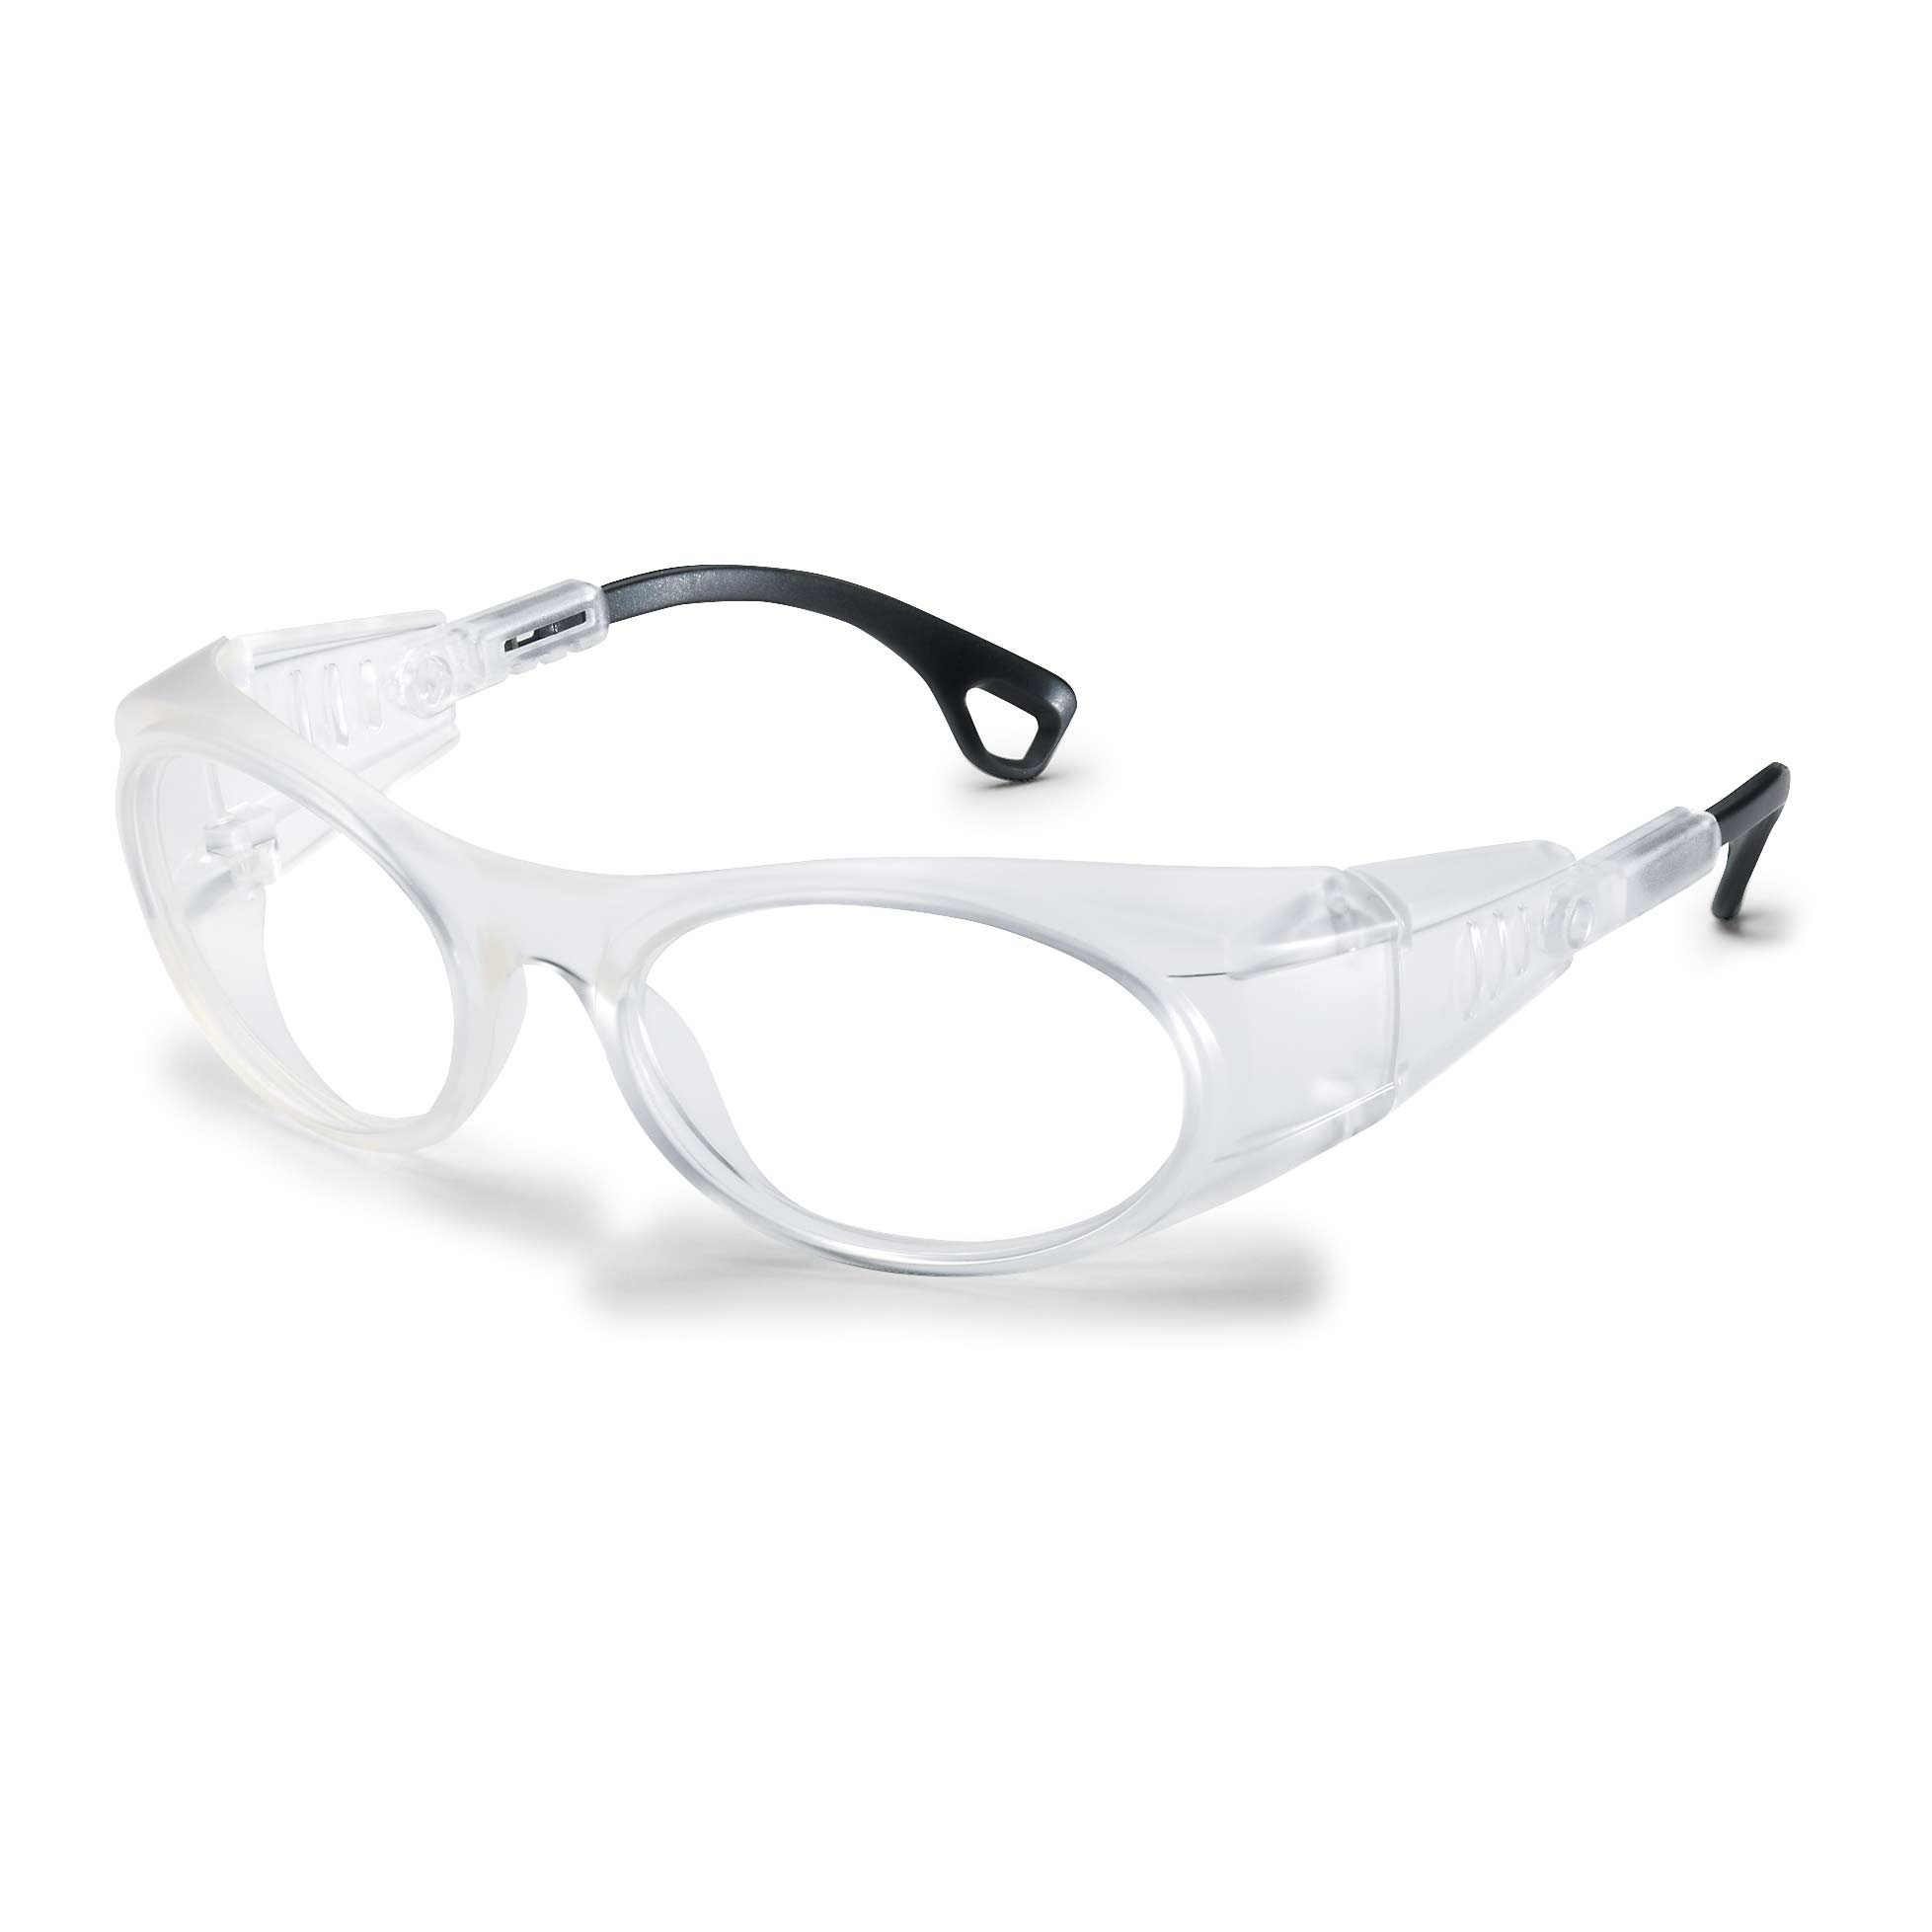 6a06fd5f14 uvex RX cd 5505 prescription safety spectacles